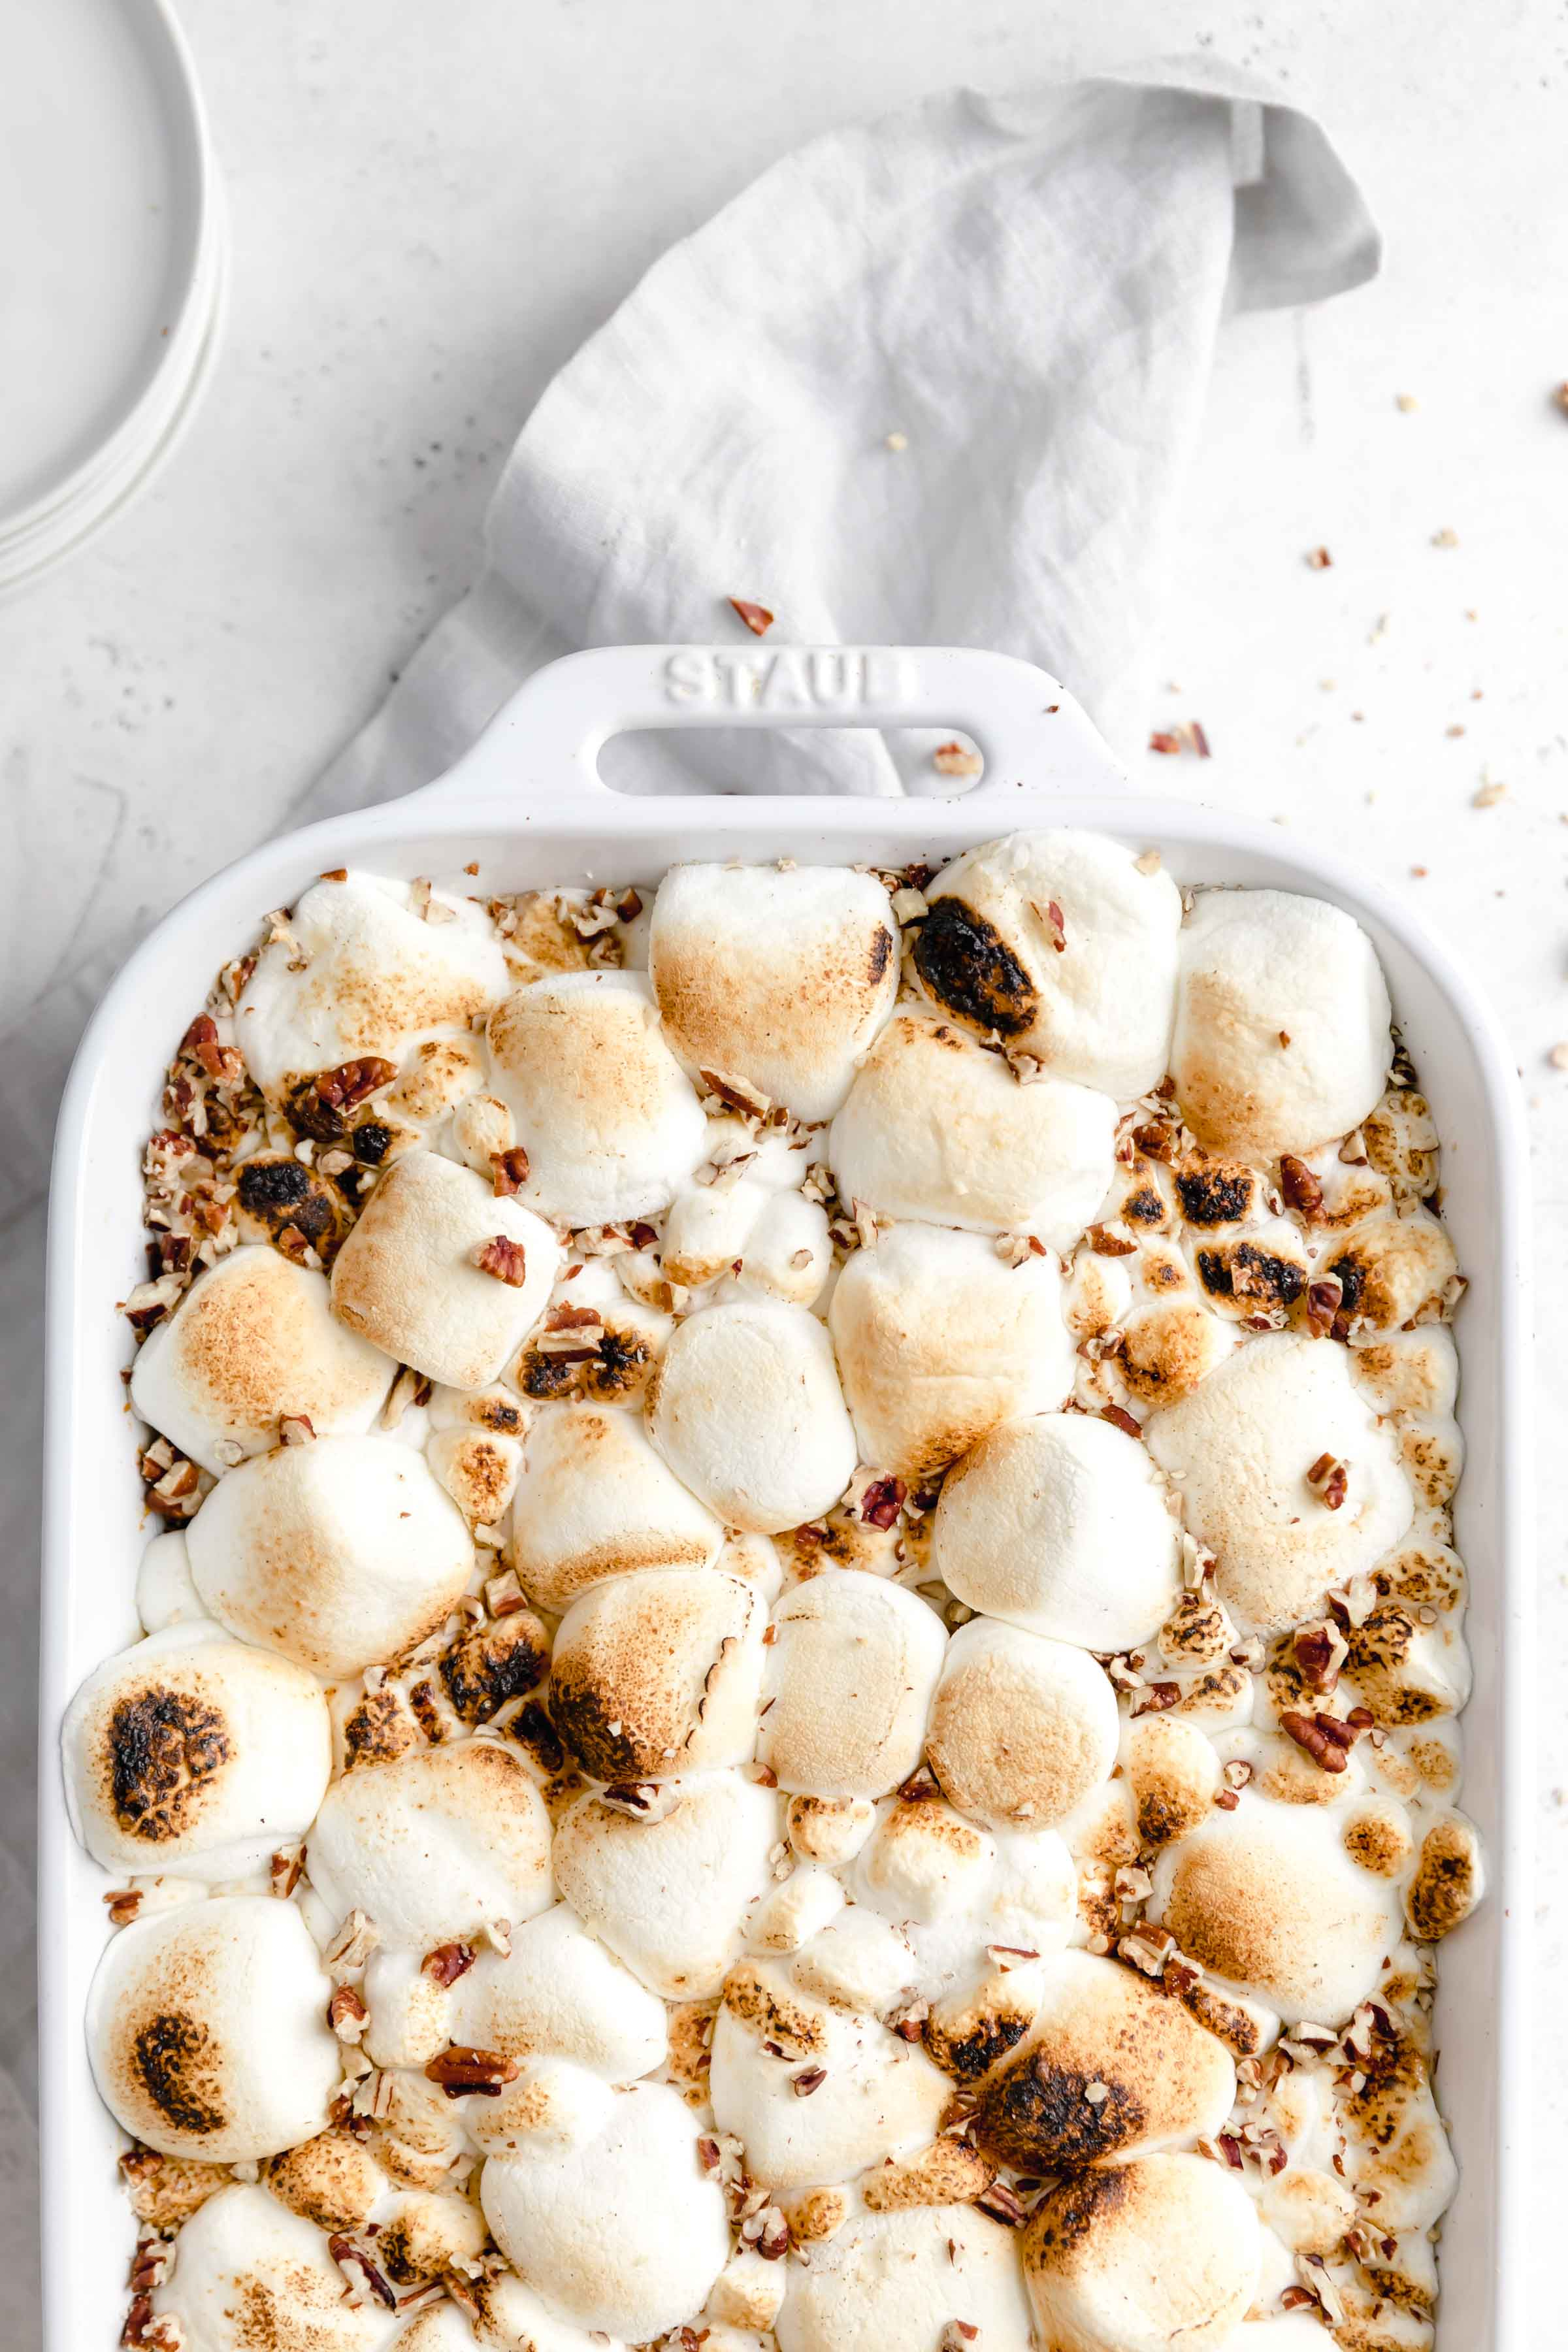 This loaded sweet potato casserole topped with a butter crumb topping AND marshmallows for the ultimate thanksgiving side dish!